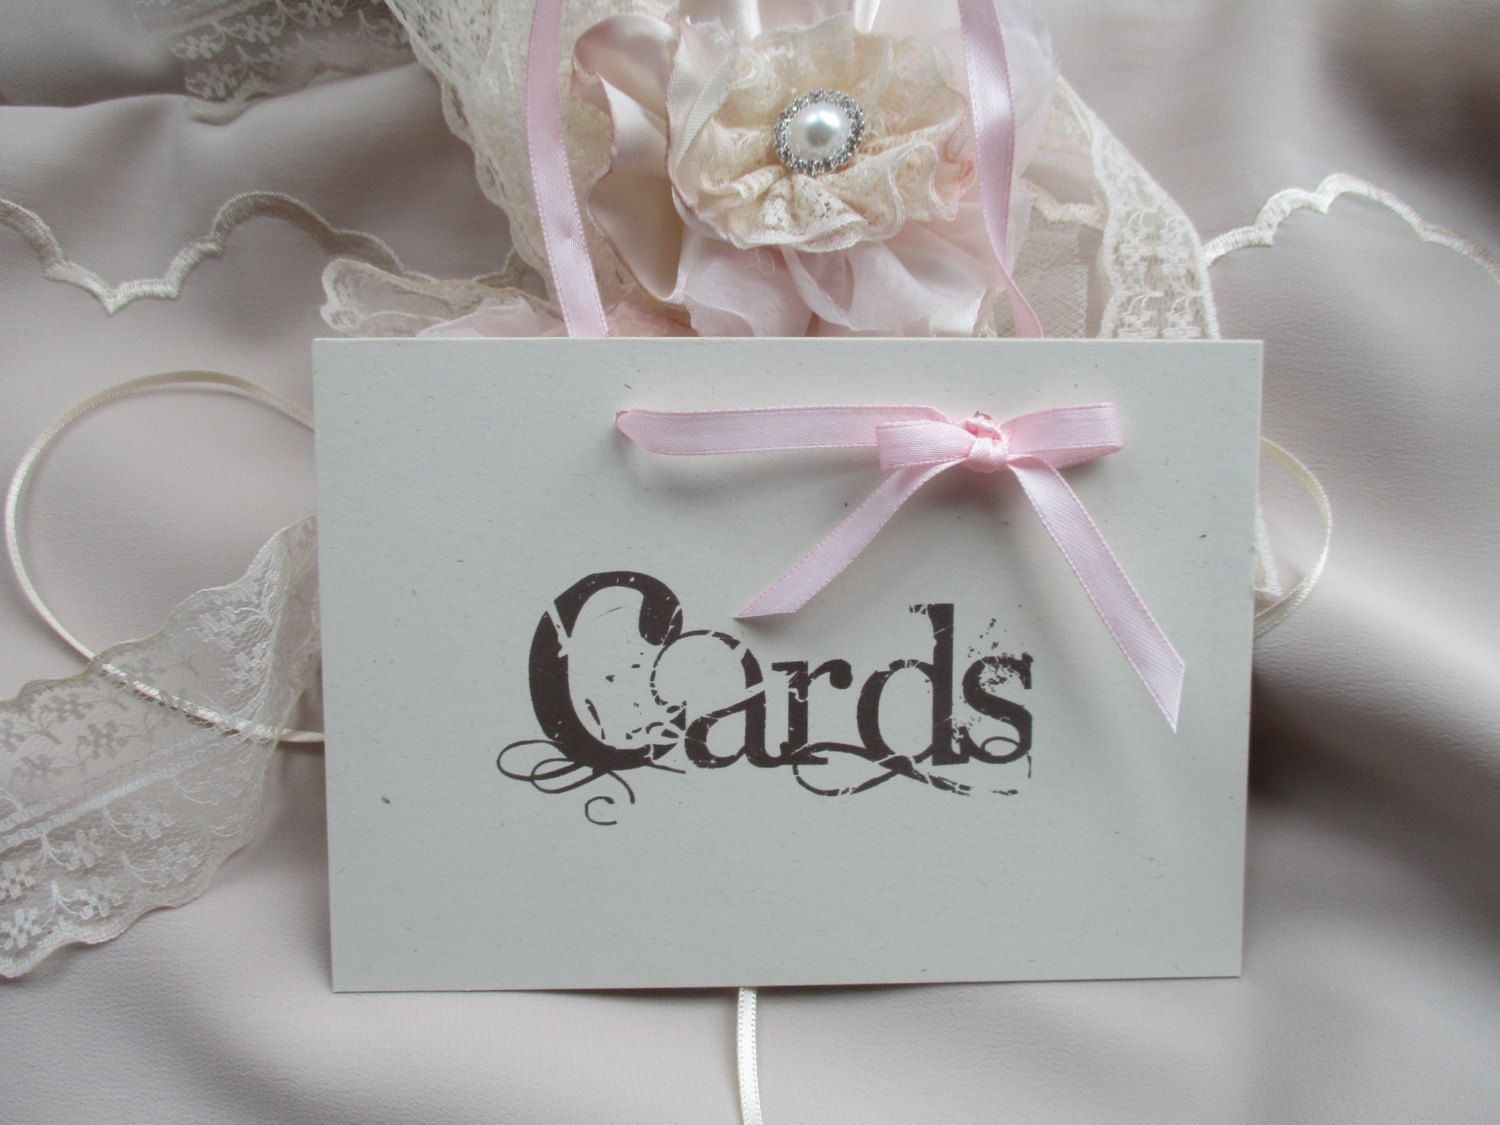 Card Sign Handmade Vintage Style Wedding Venue Decor Post Box By TheIvoryBow On